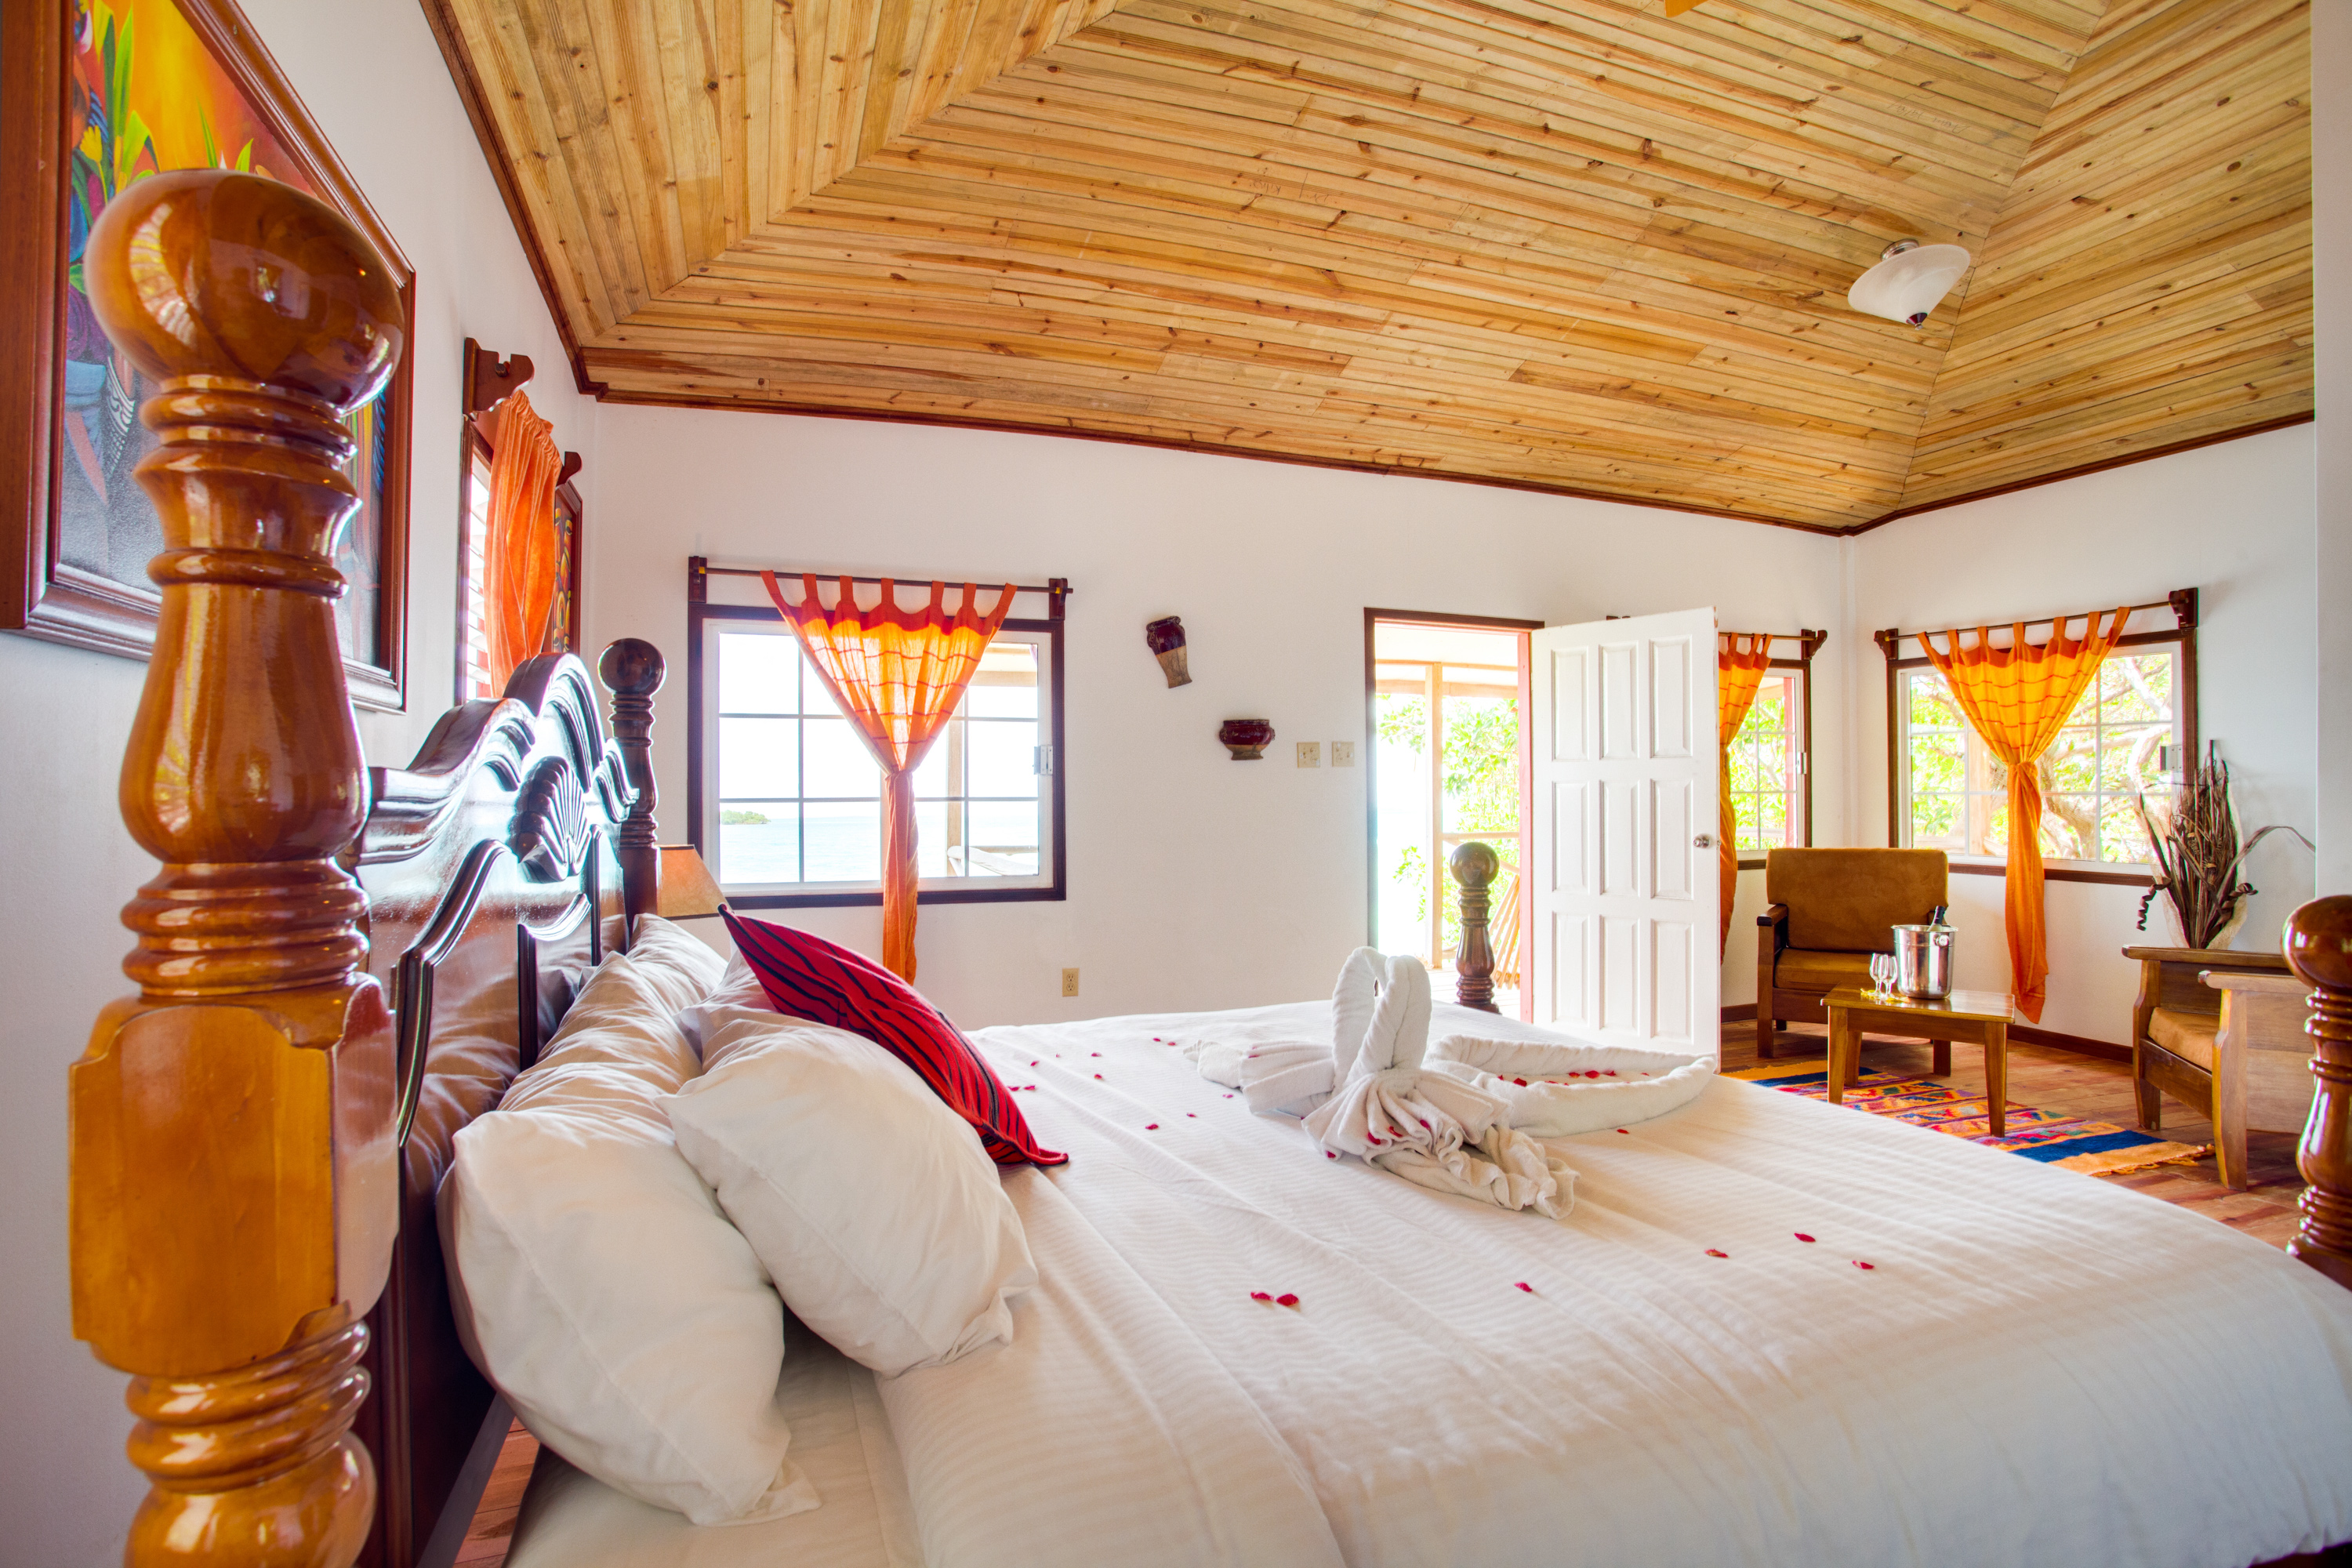 belize luxury accommodations in belize